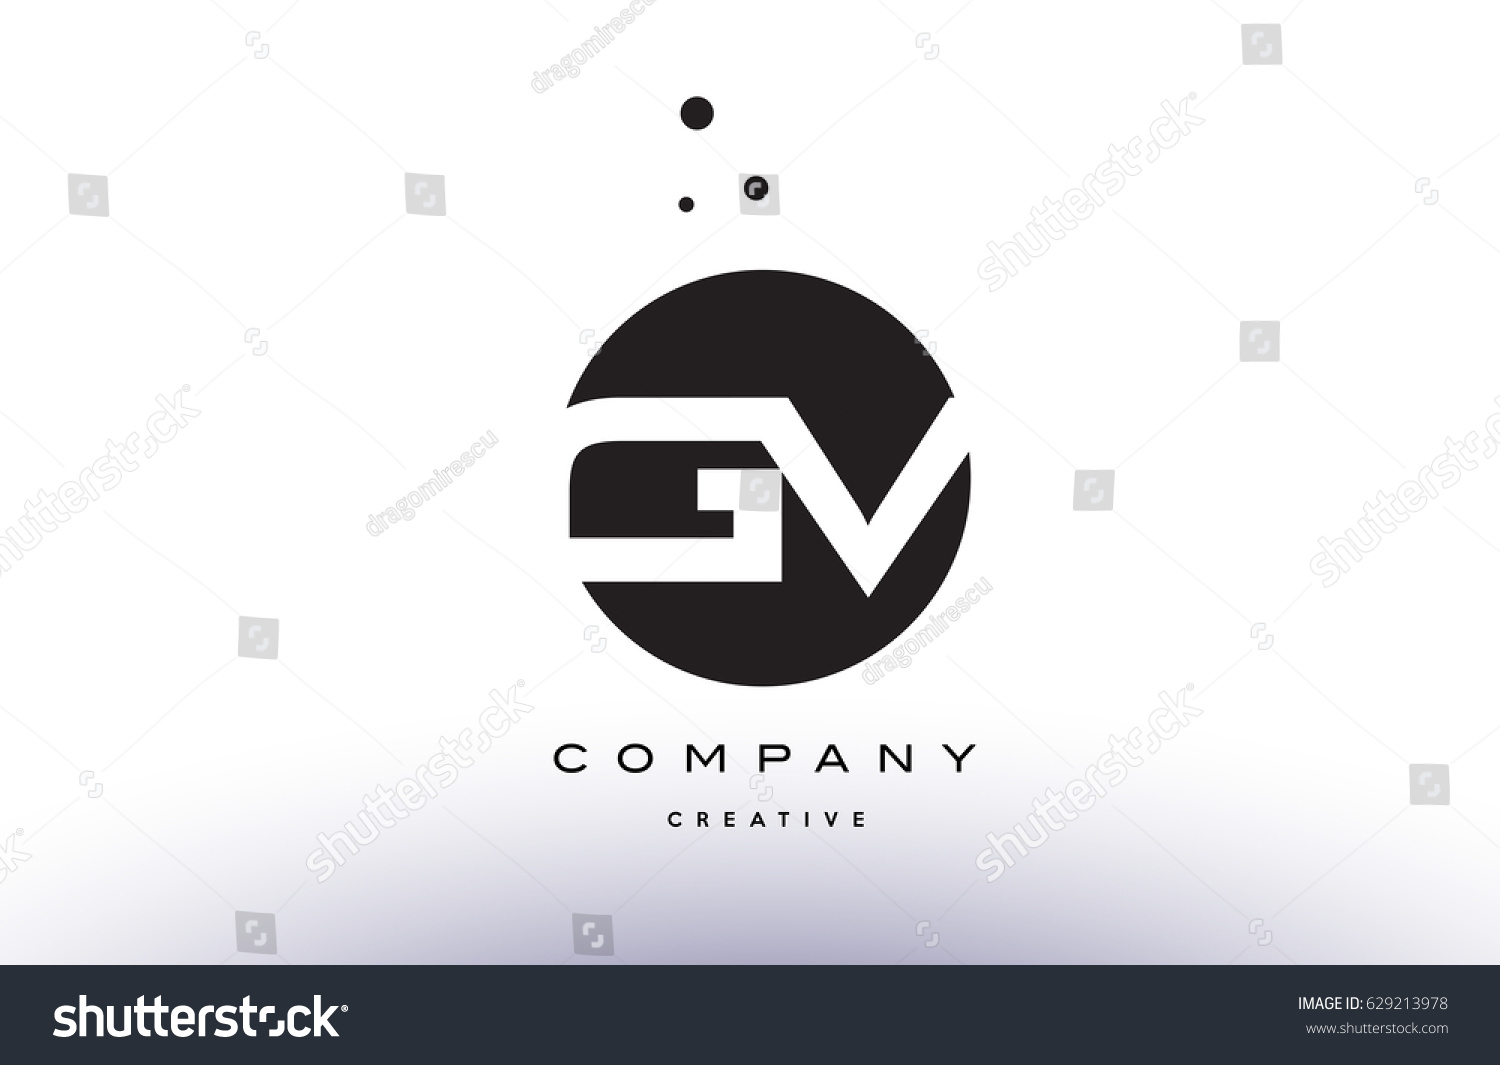 Gv g v alphabet company letter stock vector 629213978 shutterstock gv g v alphabet company letter logo design vector icon template simple black white circle dot dots buycottarizona Image collections